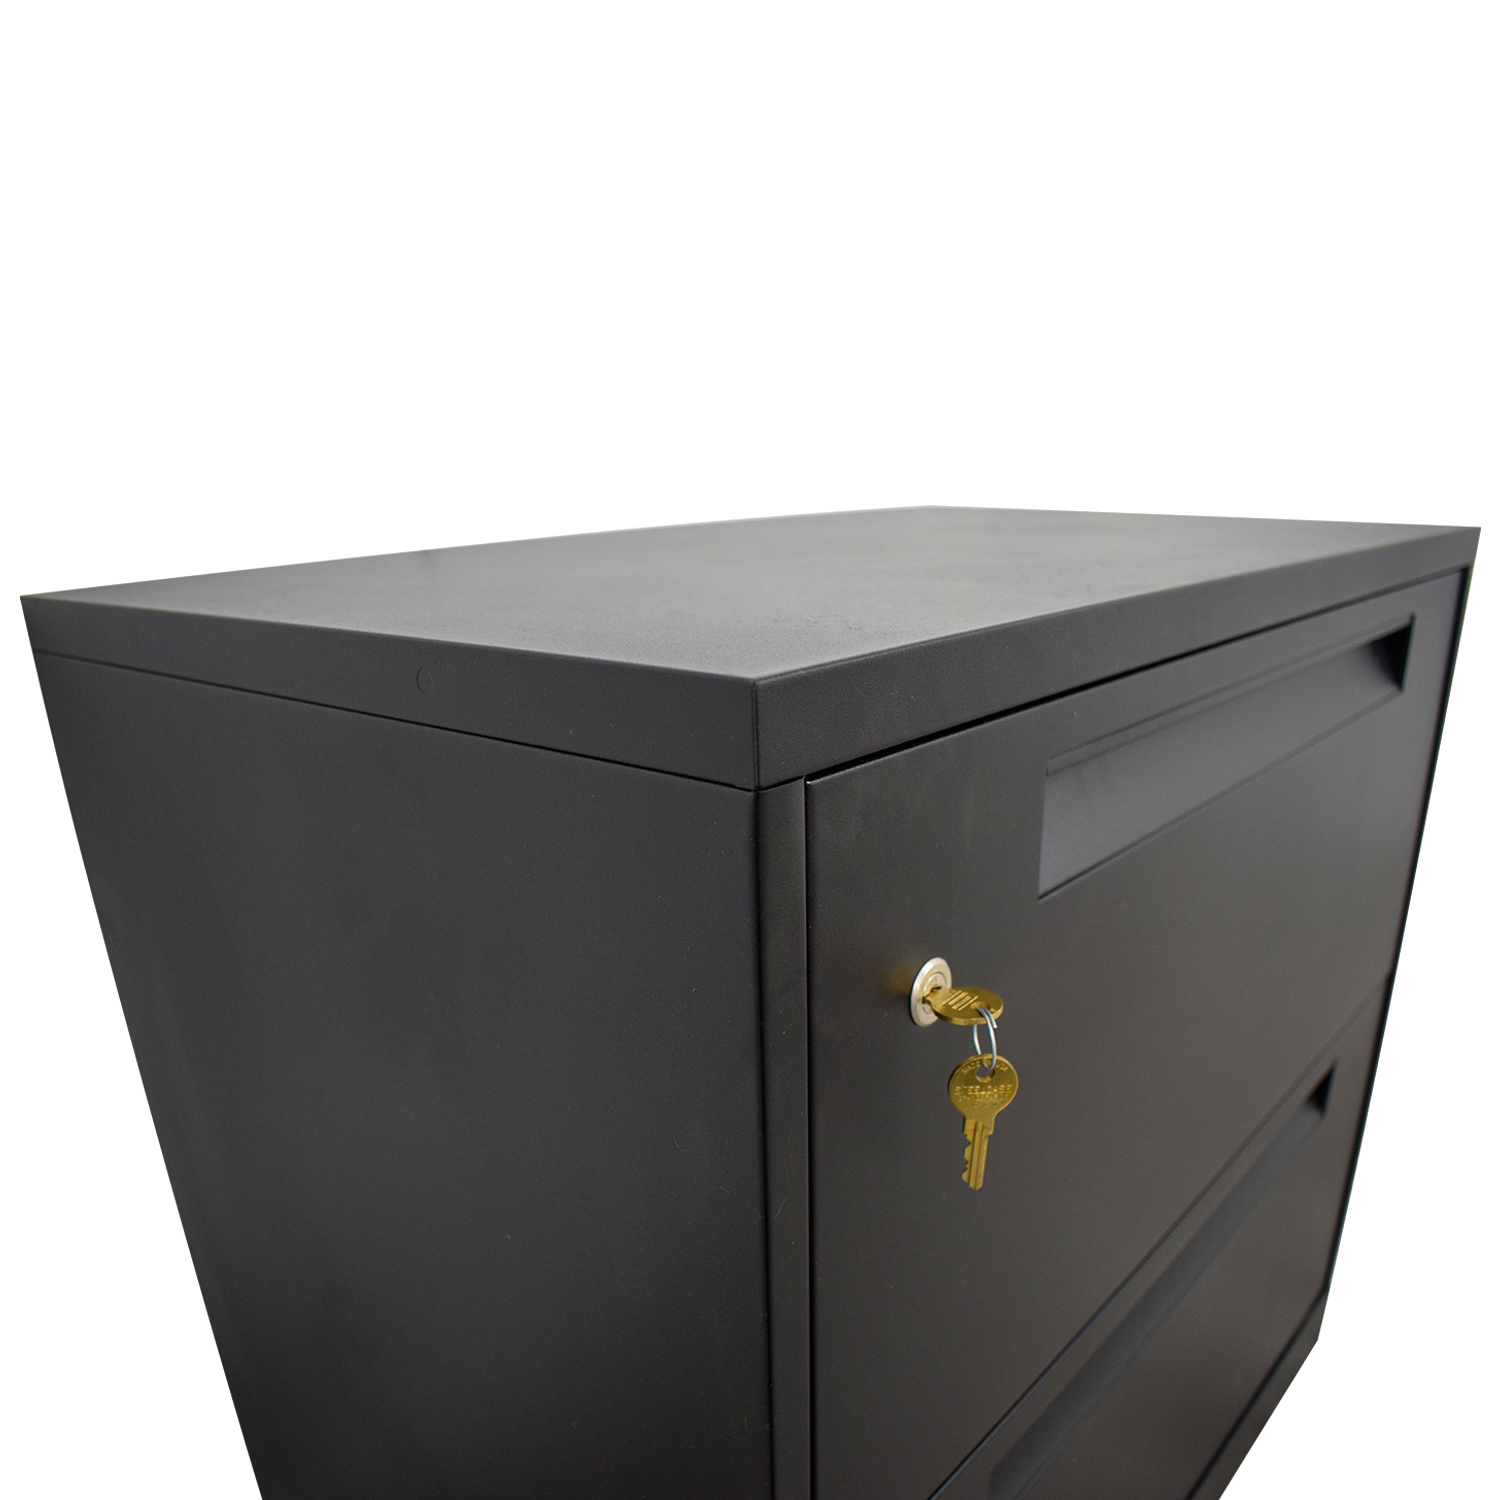 Steelcase Steelcase Black Lateral Two-Drawer File Cabinet nyc